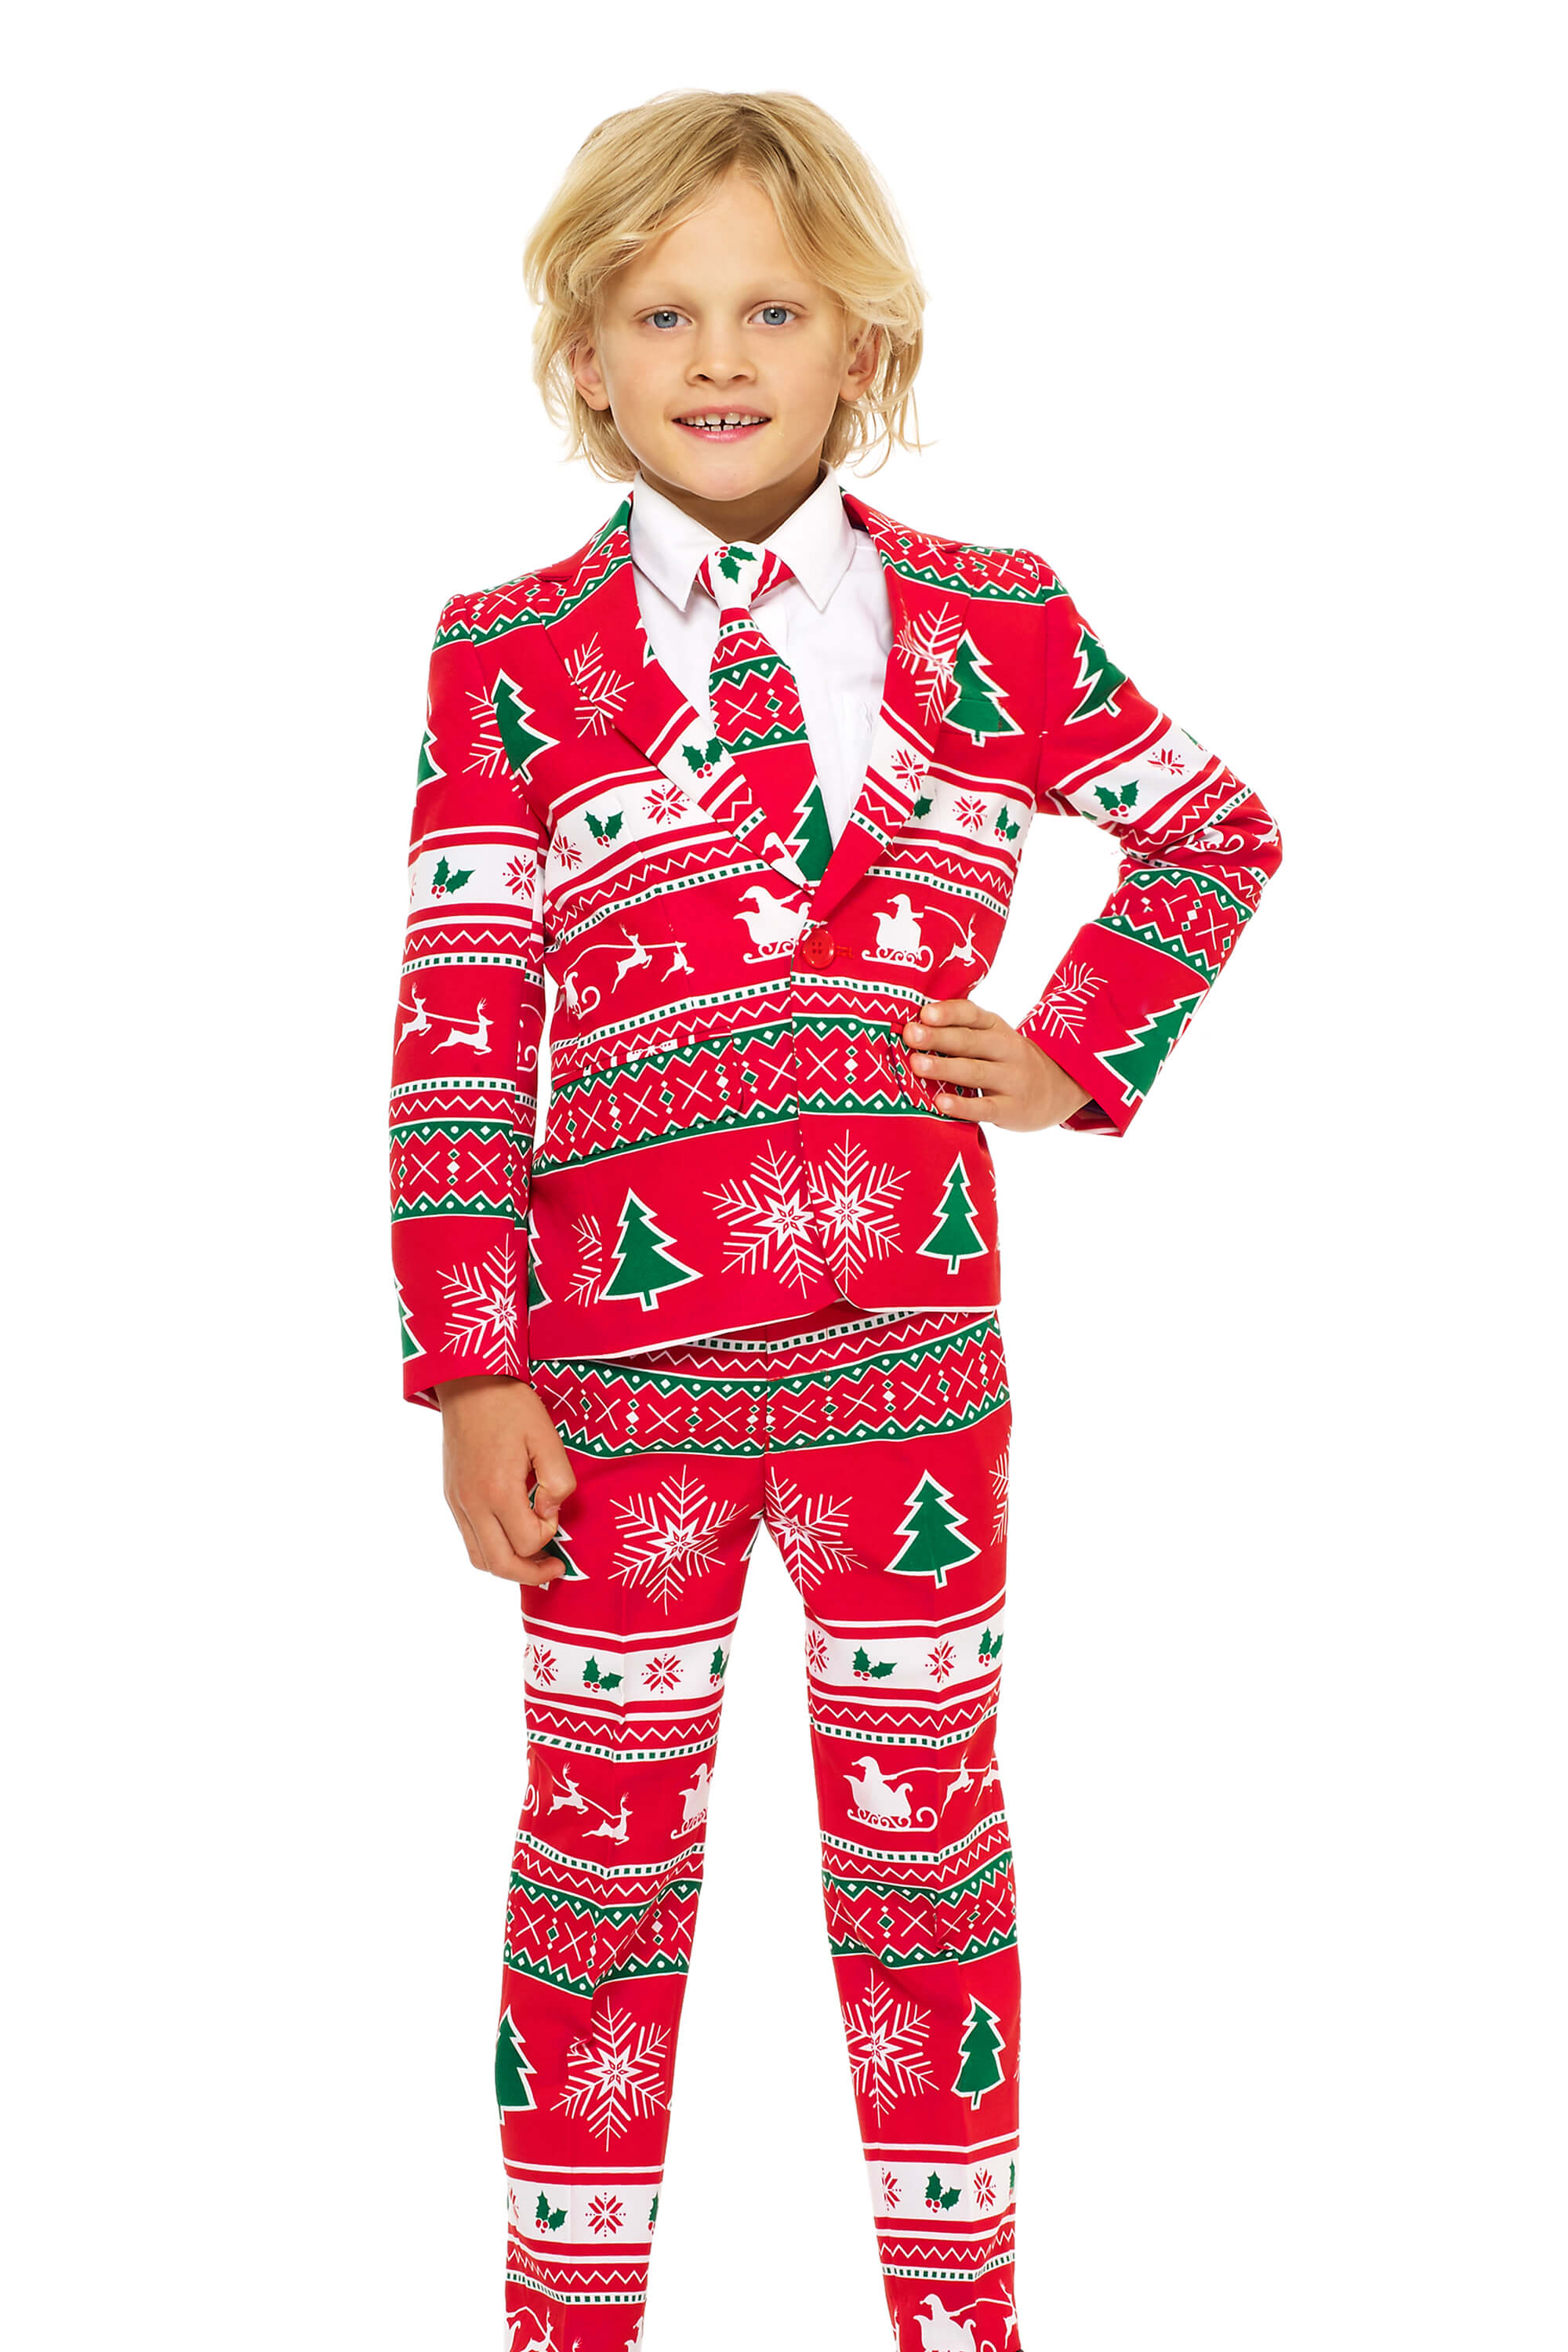 30024f6a1 Matching Family Christmas Outfits